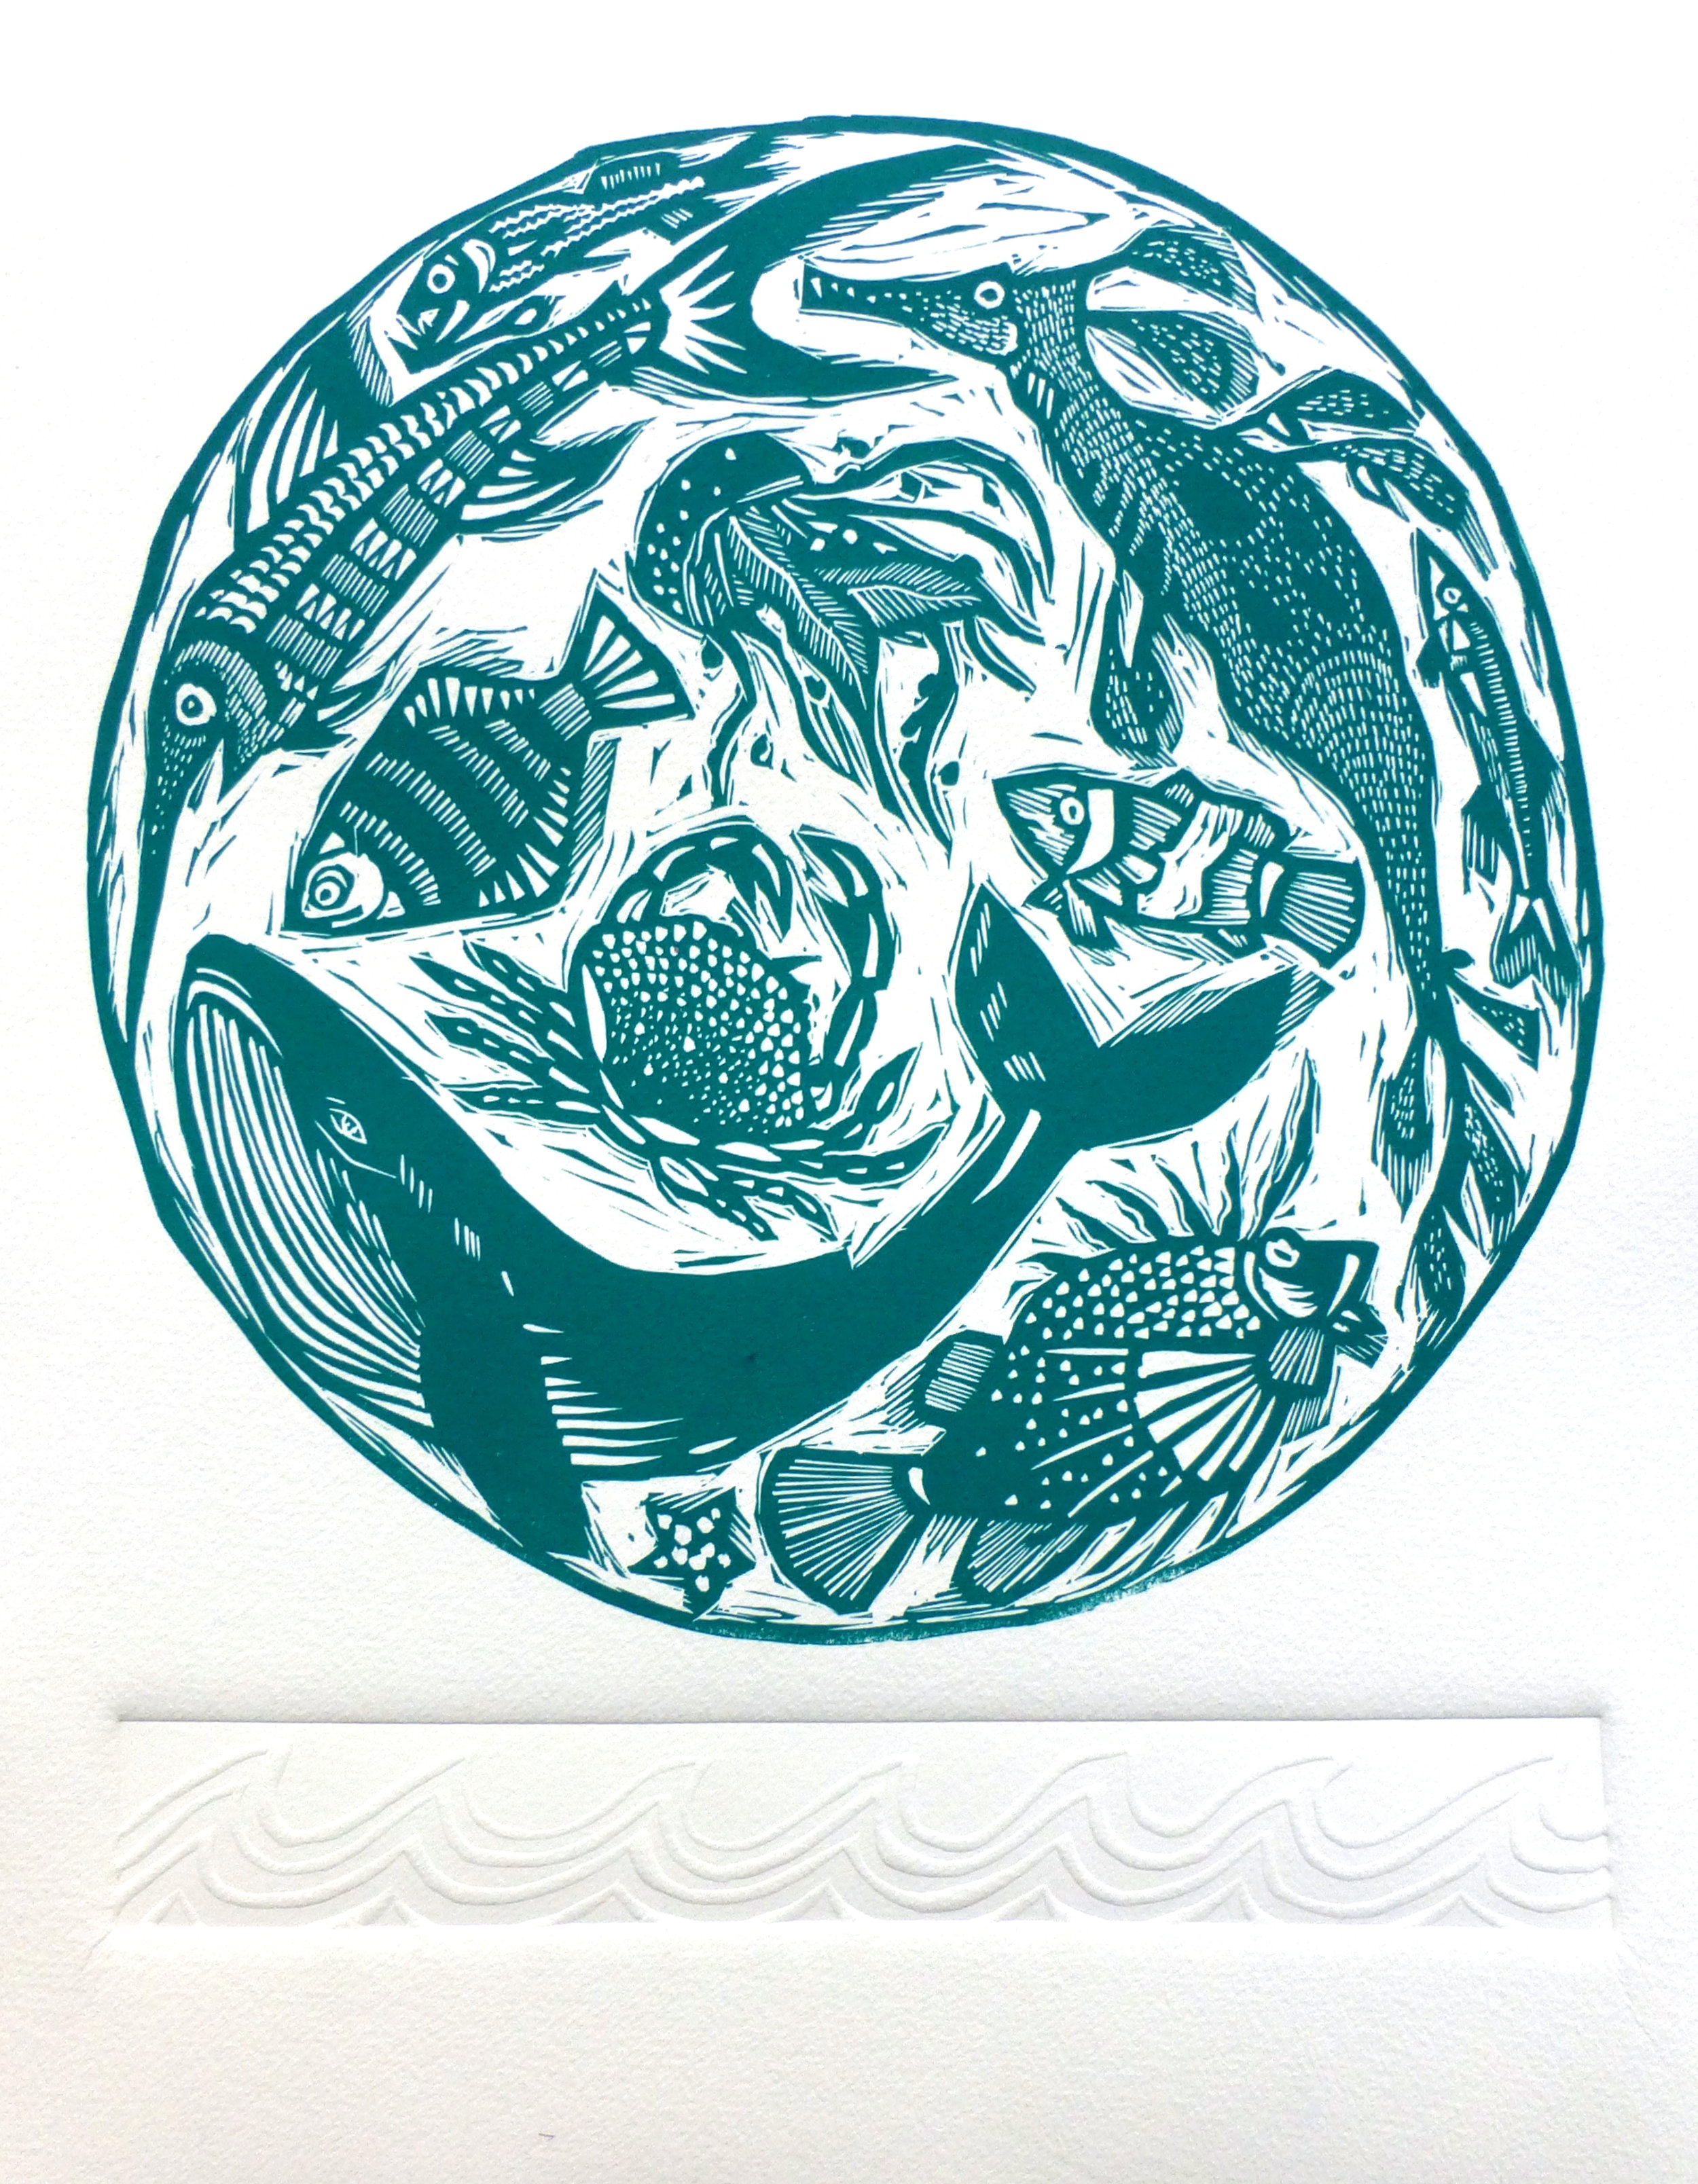 Creatures of the Deep   Linocut with embossing, 2017  Edition of 20  Paper size: 35 cm x 28 cm  $100